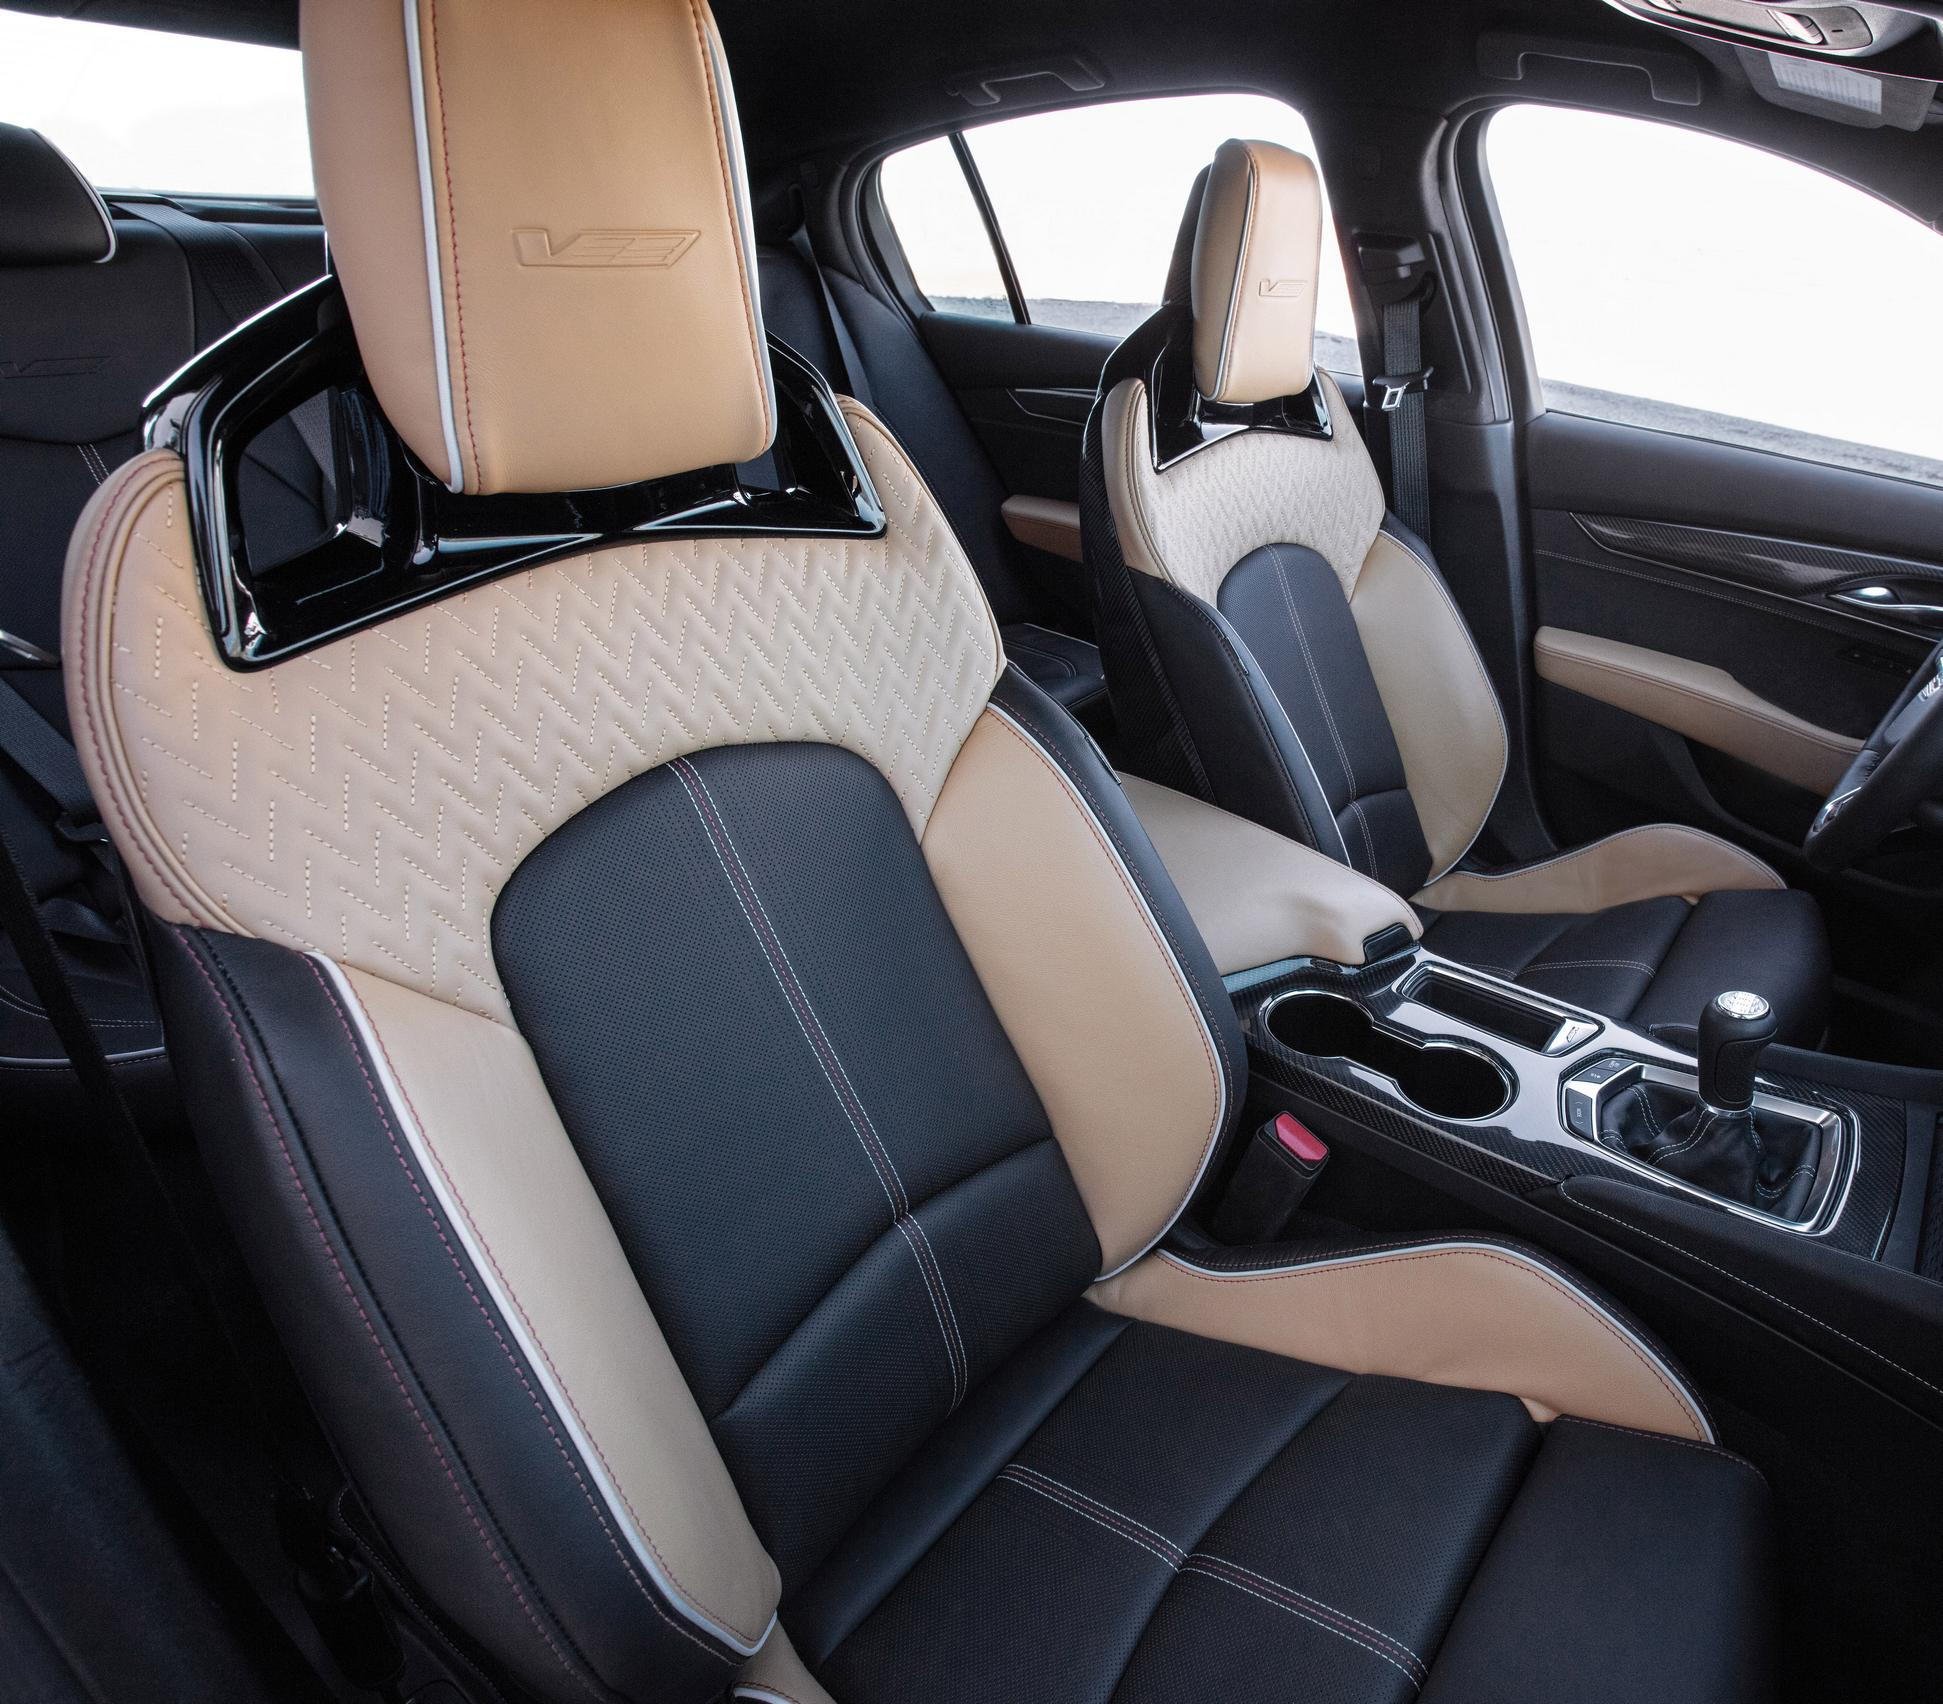 2022 Cadillac CT5-V Blackwing seats